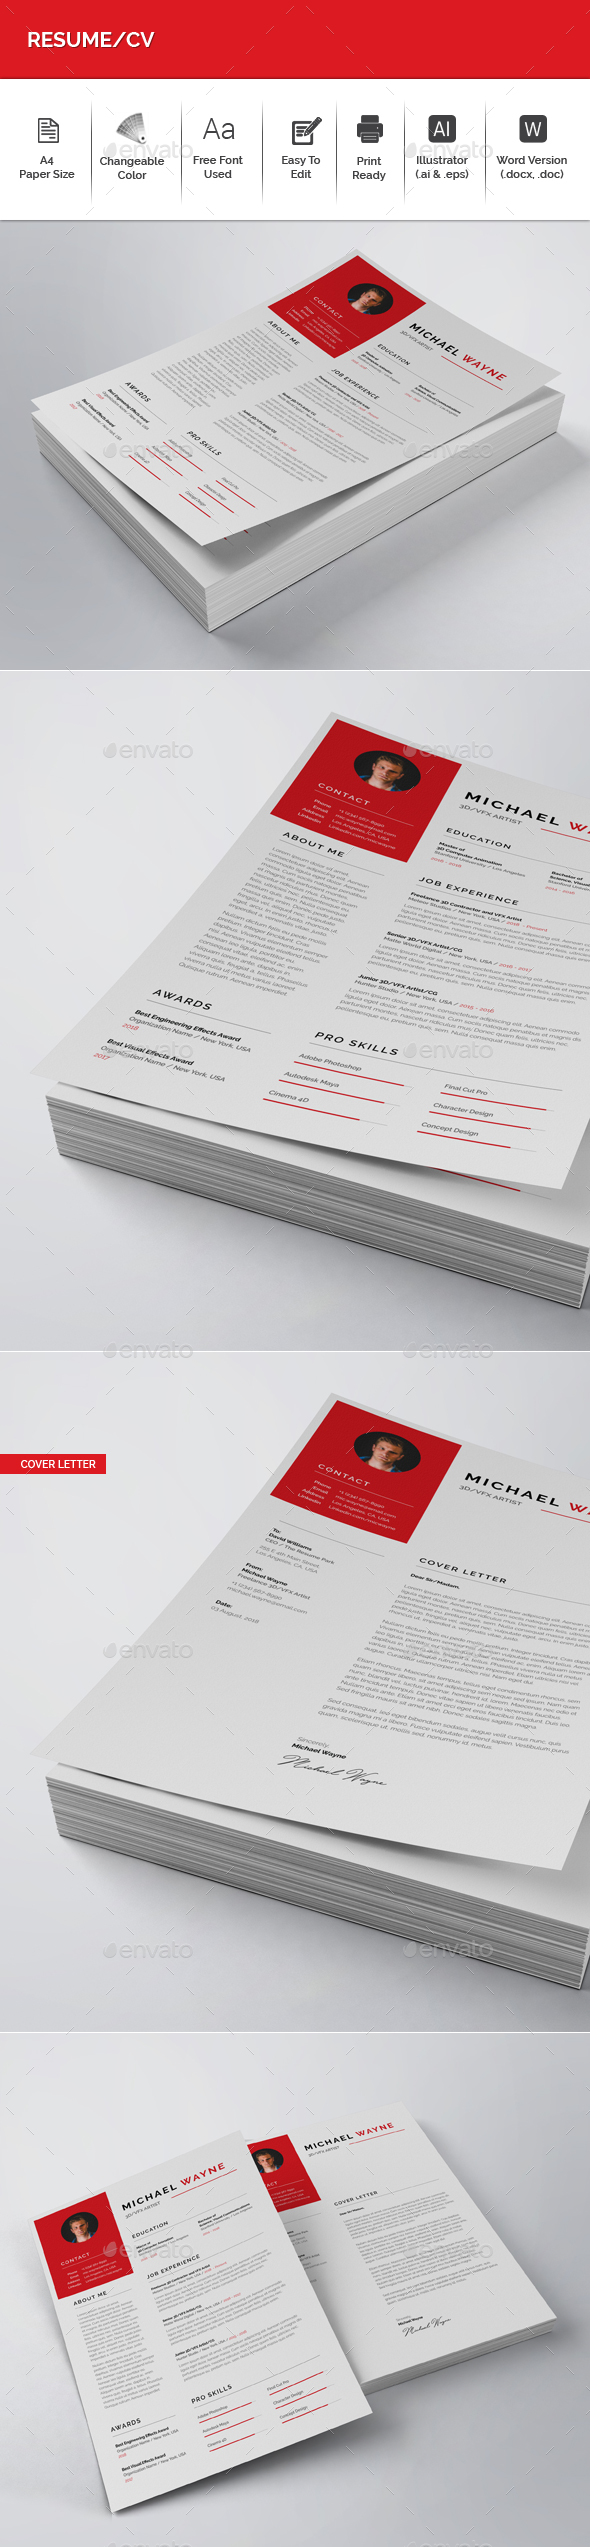 Resume/CV - Resumes Stationery